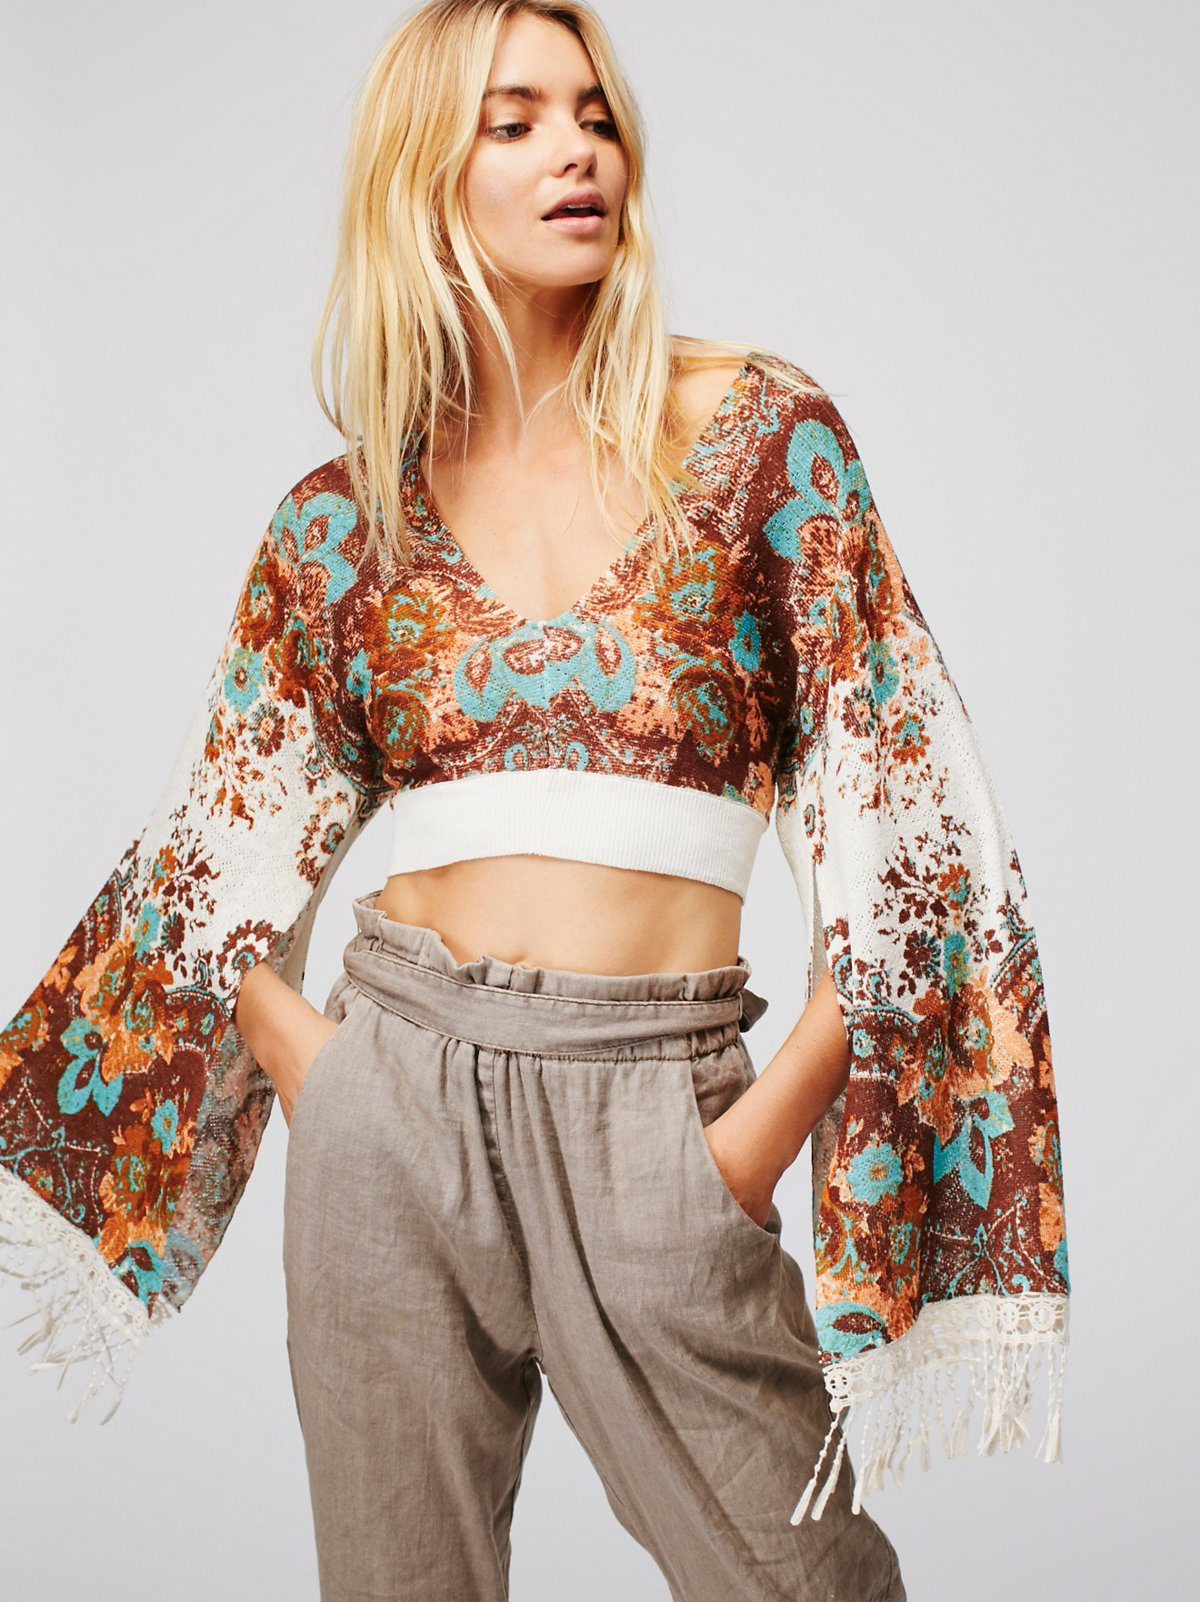 Meet Me At Woodstock Cropped Sweater